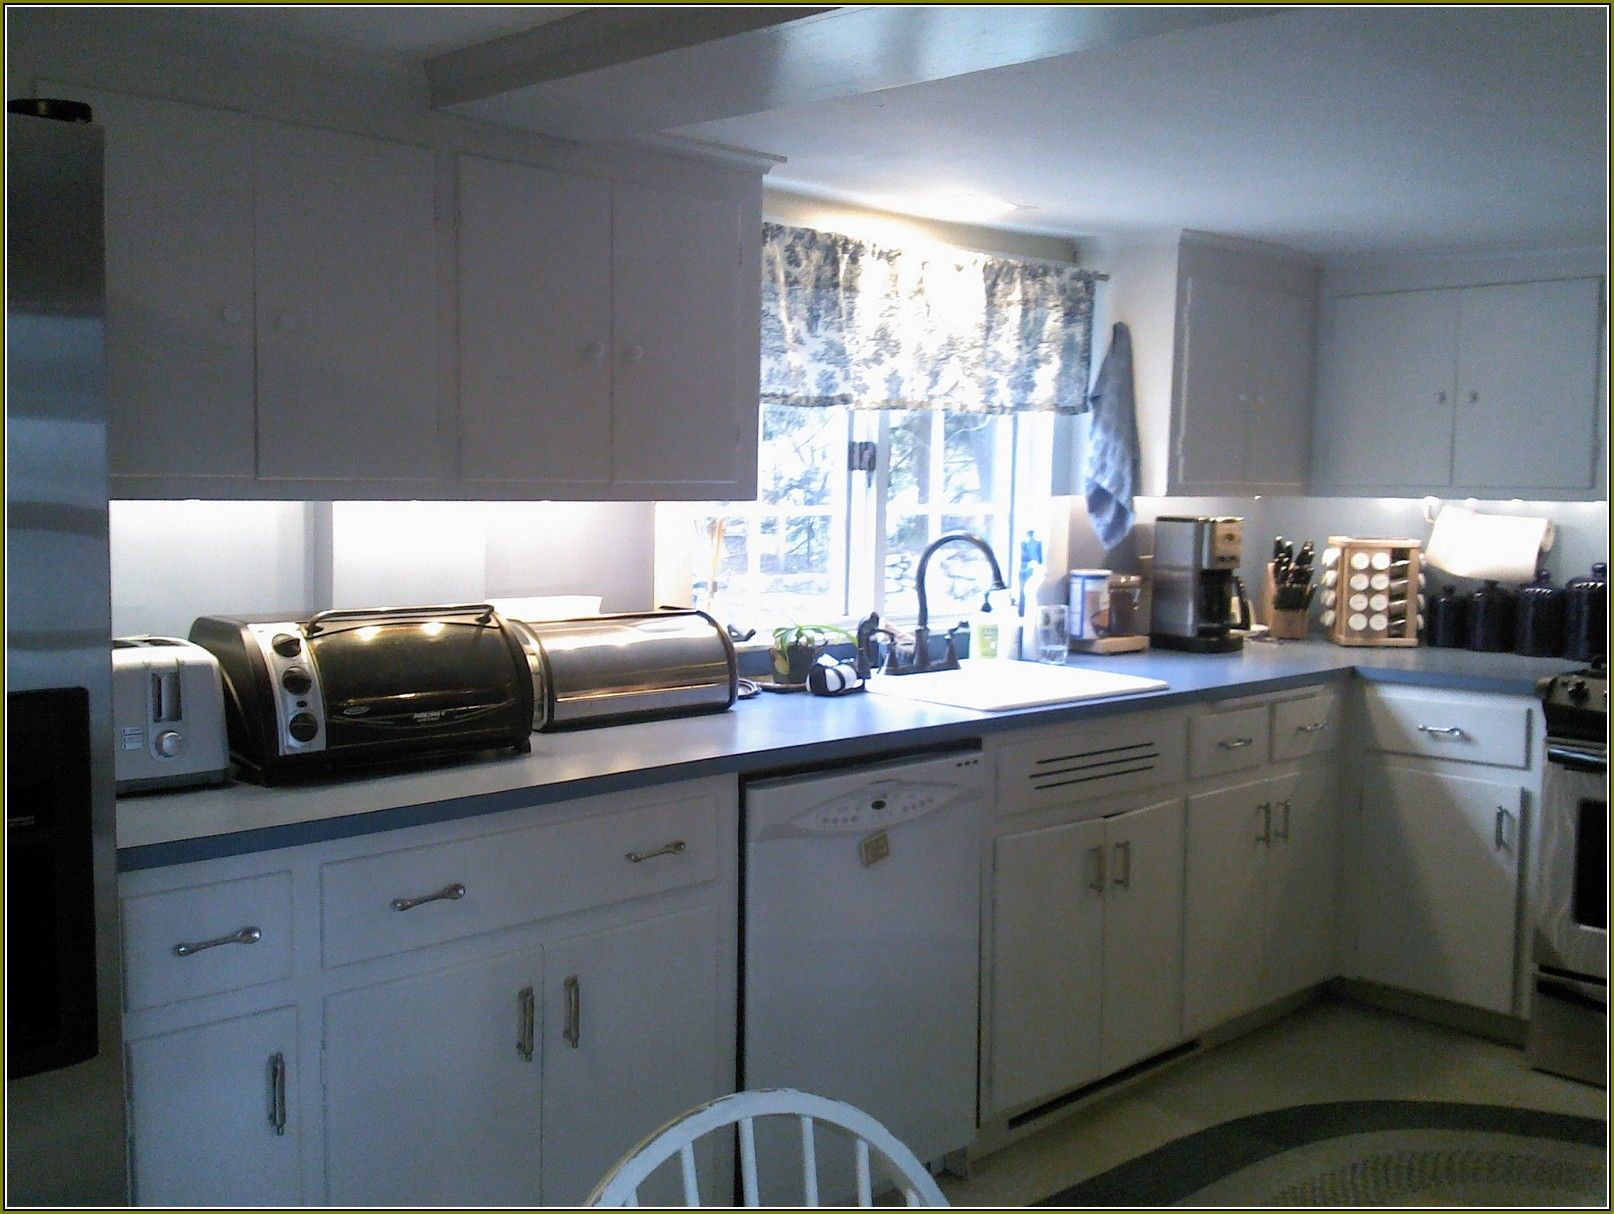 Home Improvements Refference Refacing Kitchen Cabinets Depot Cheap Buy  Supplies